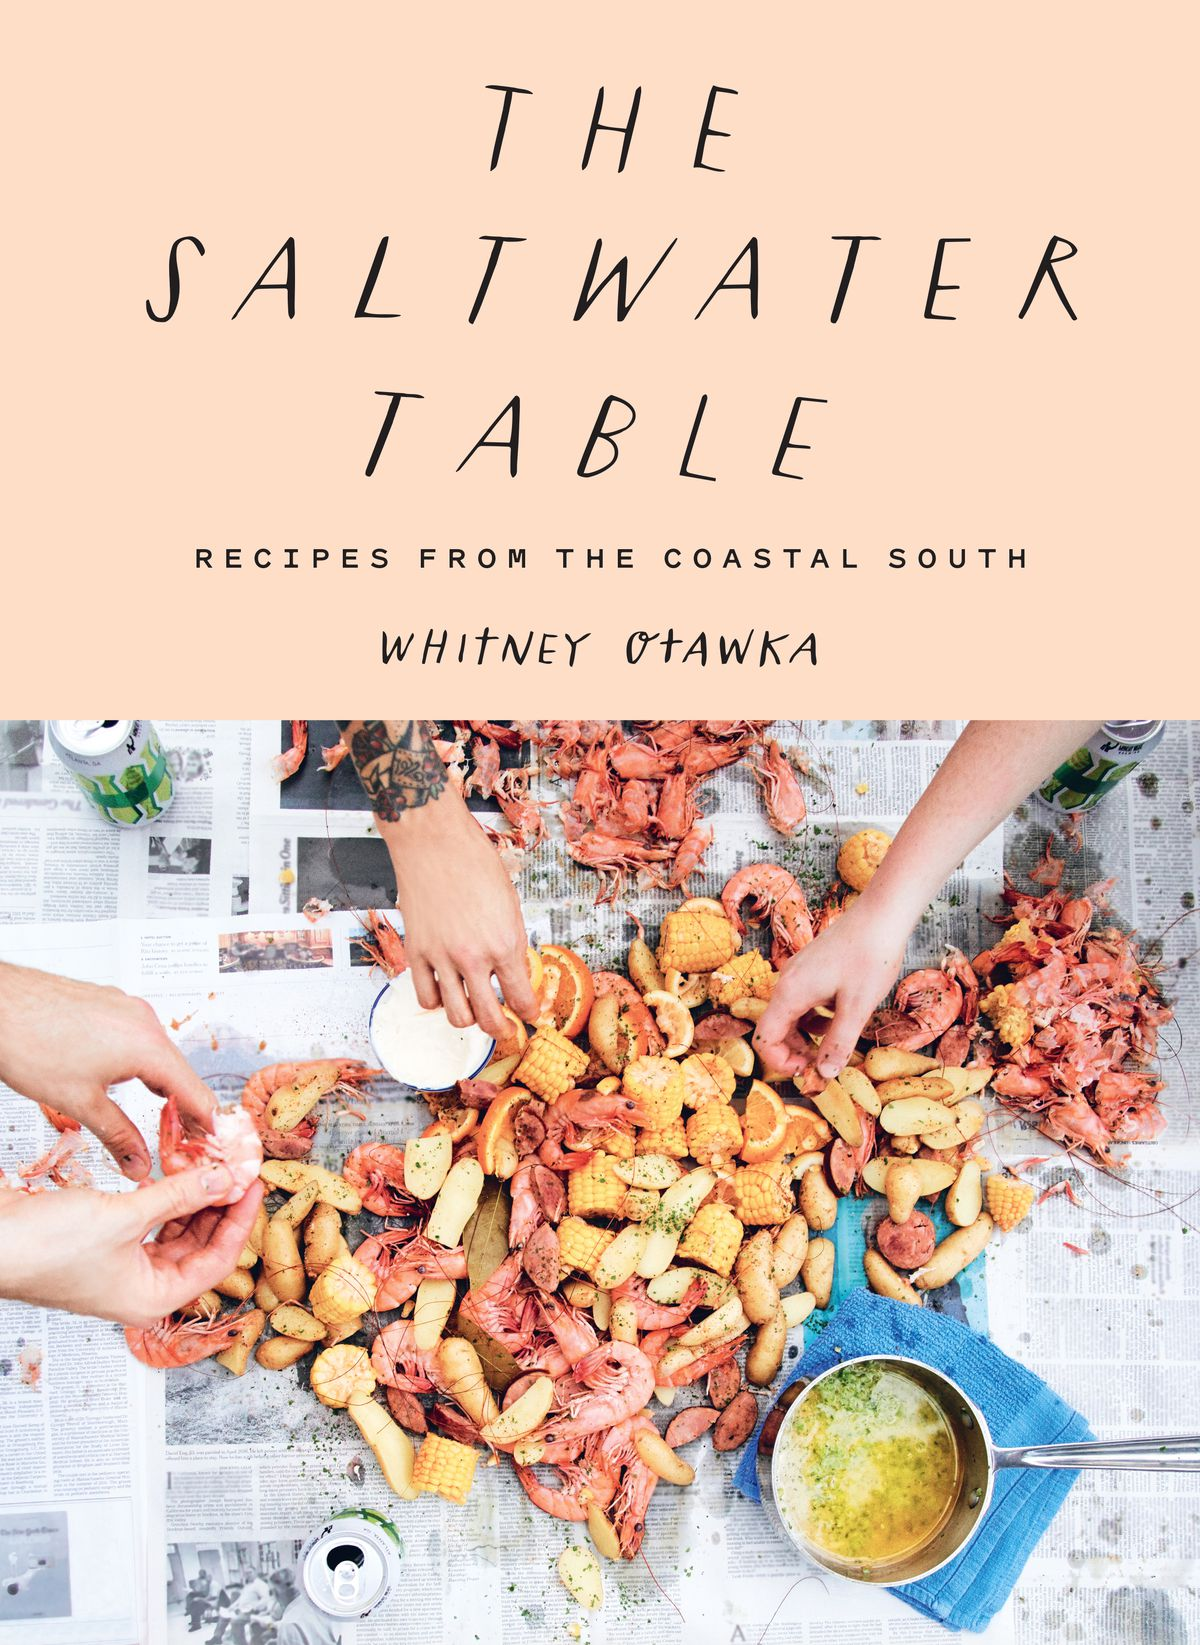 """Cover of """"The Saltwater Table,"""" with soft pink coloring and photo of hands reaching for seafood on a newspaper-covered table, with cans of beer open alongside them"""